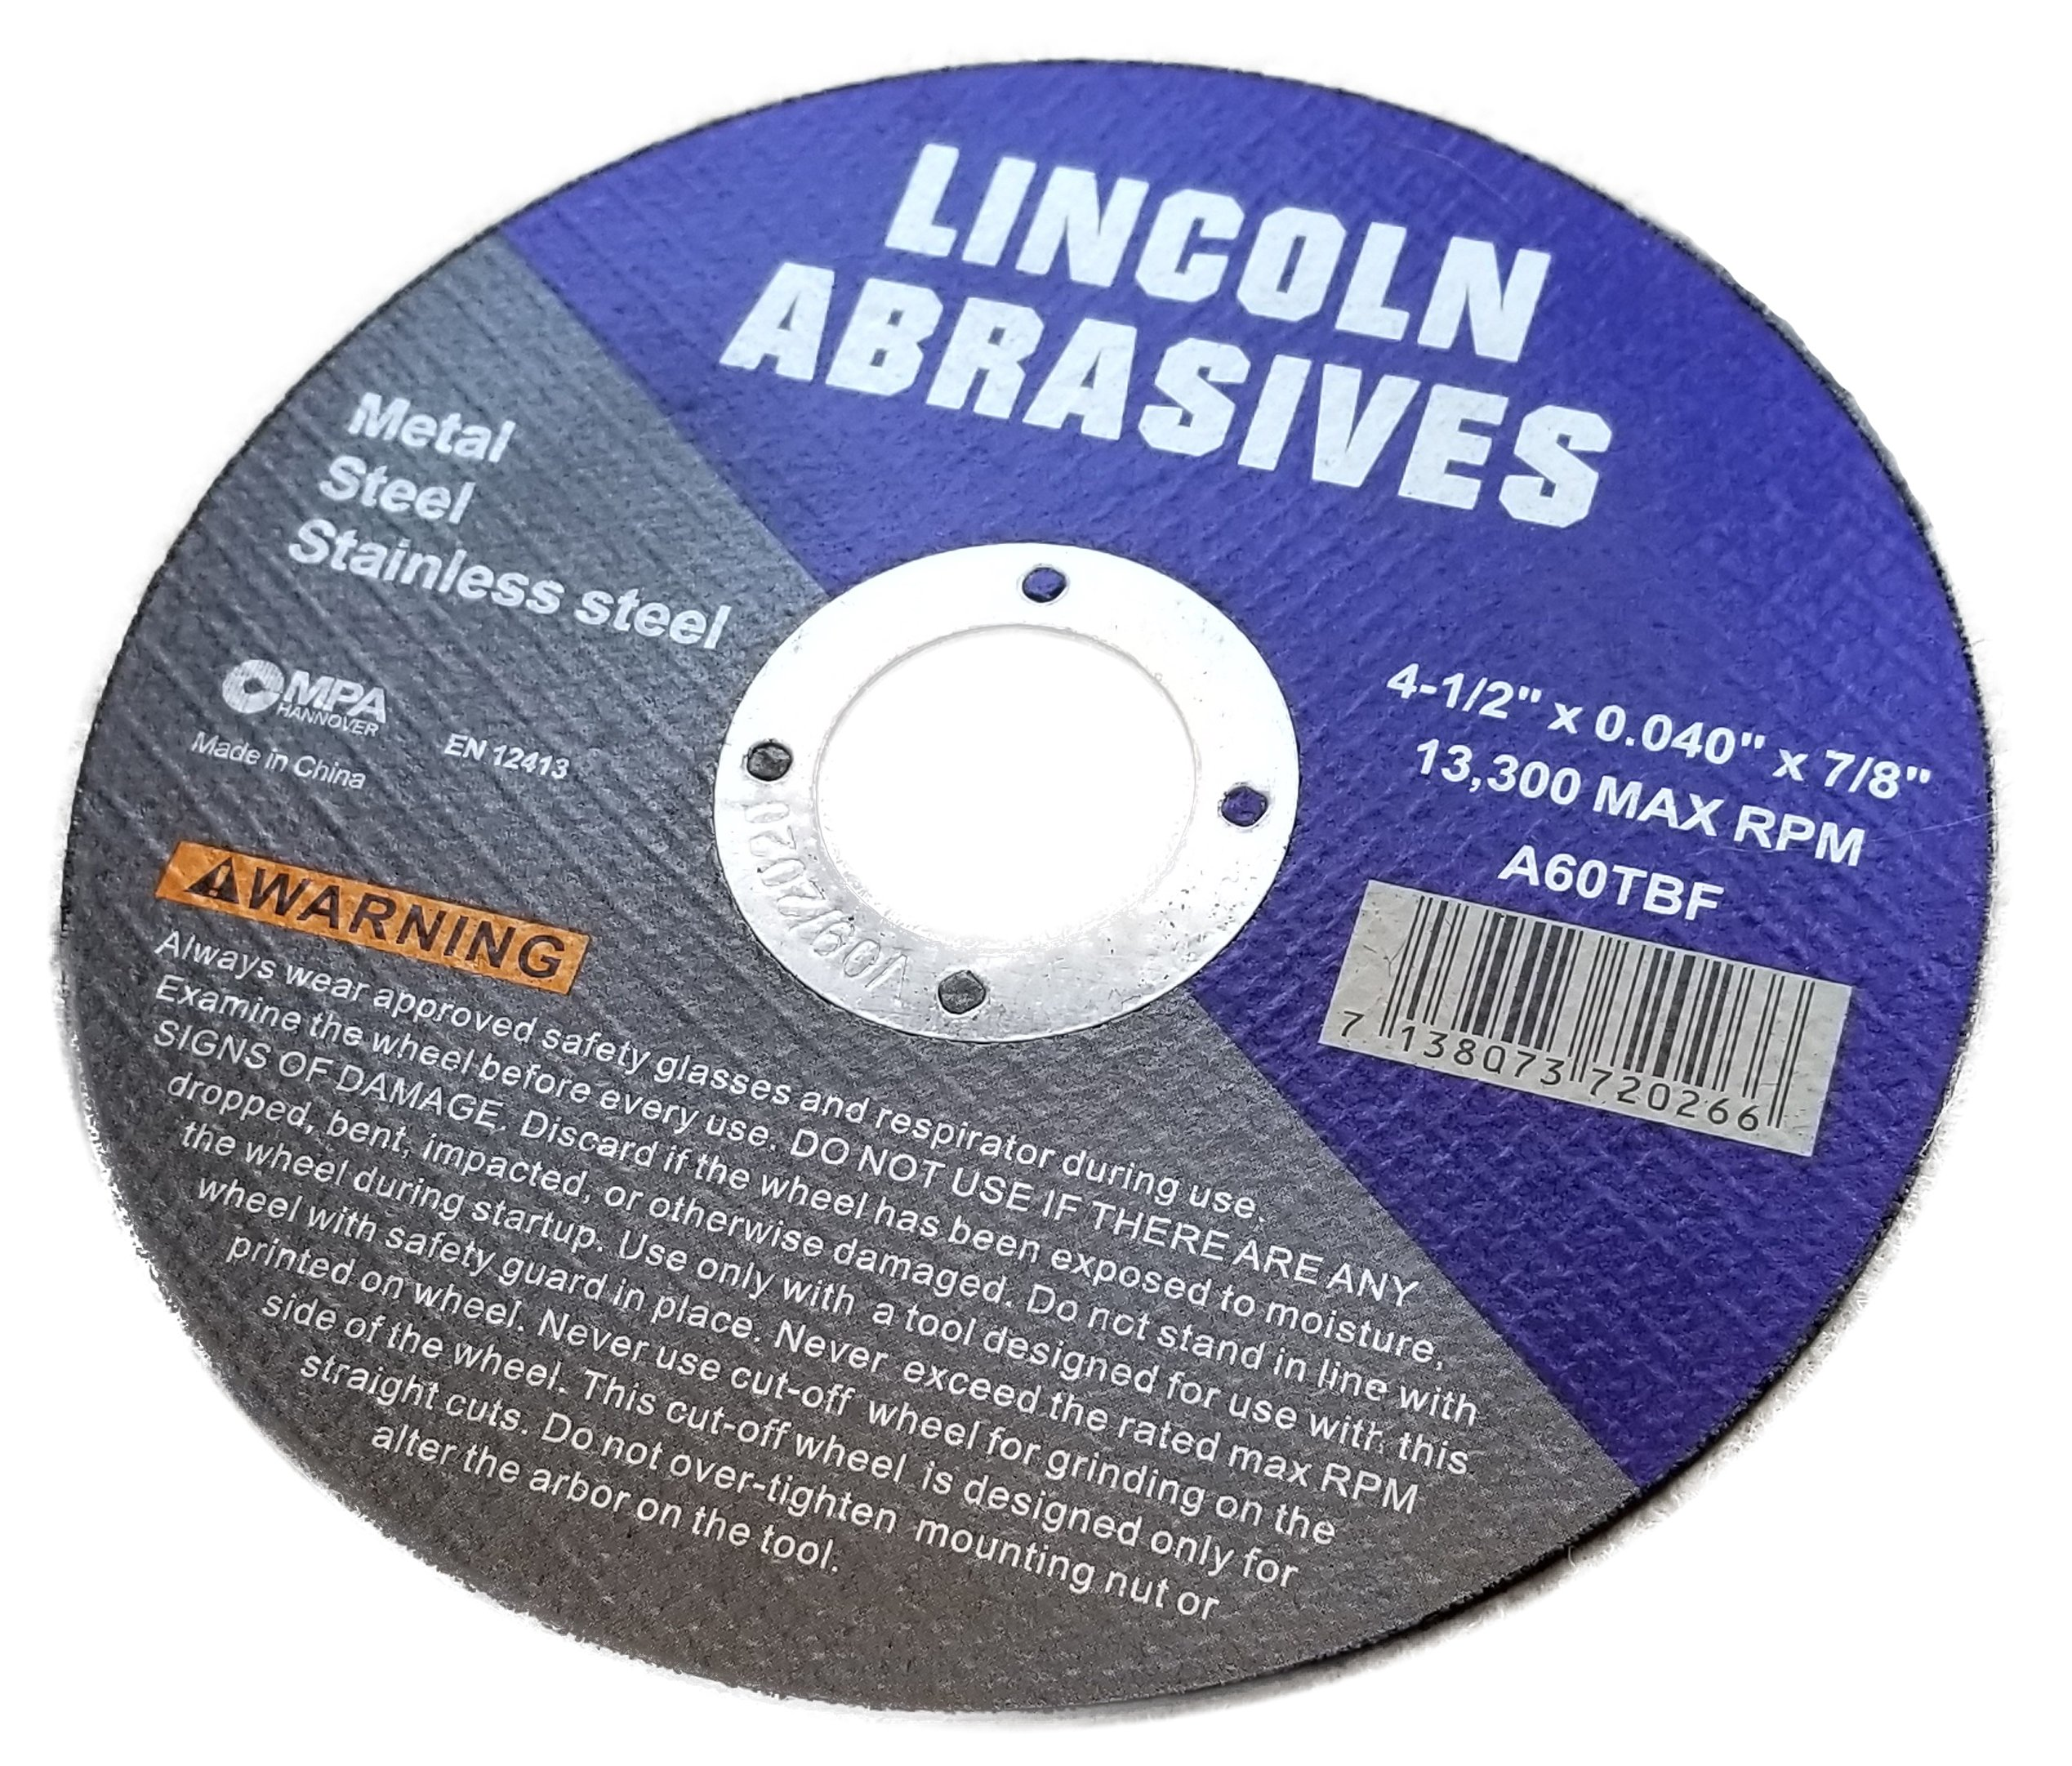 500 Pc 4.5''x.040''x7/8'' Cut-Off Wheels Lincoln Abrasives Metal & Stainless Steel by Lincoln Abrasives (Image #3)